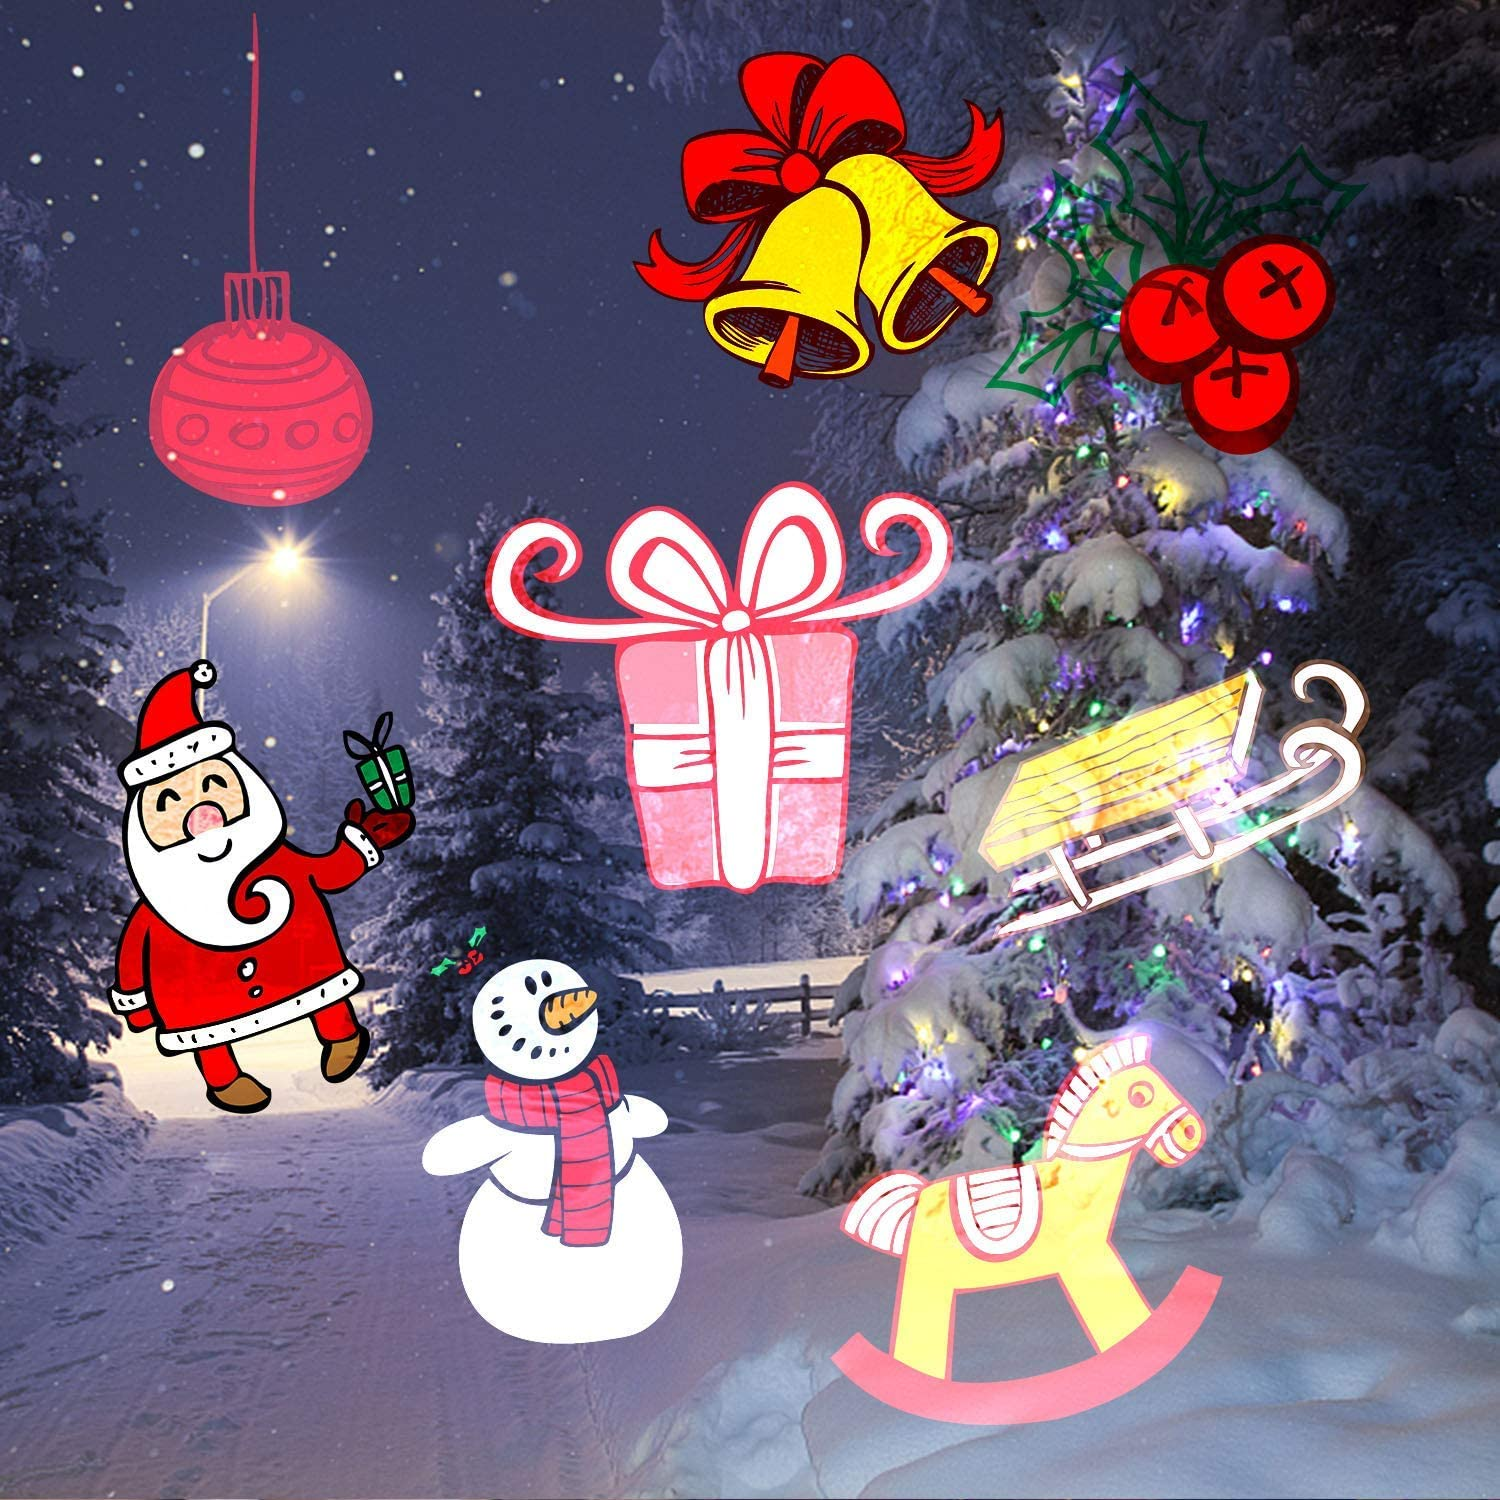 Christmas Light UNIFUN Kids Projector Flashlight Battery Operated Handheld Decoration Light for Christmas Party